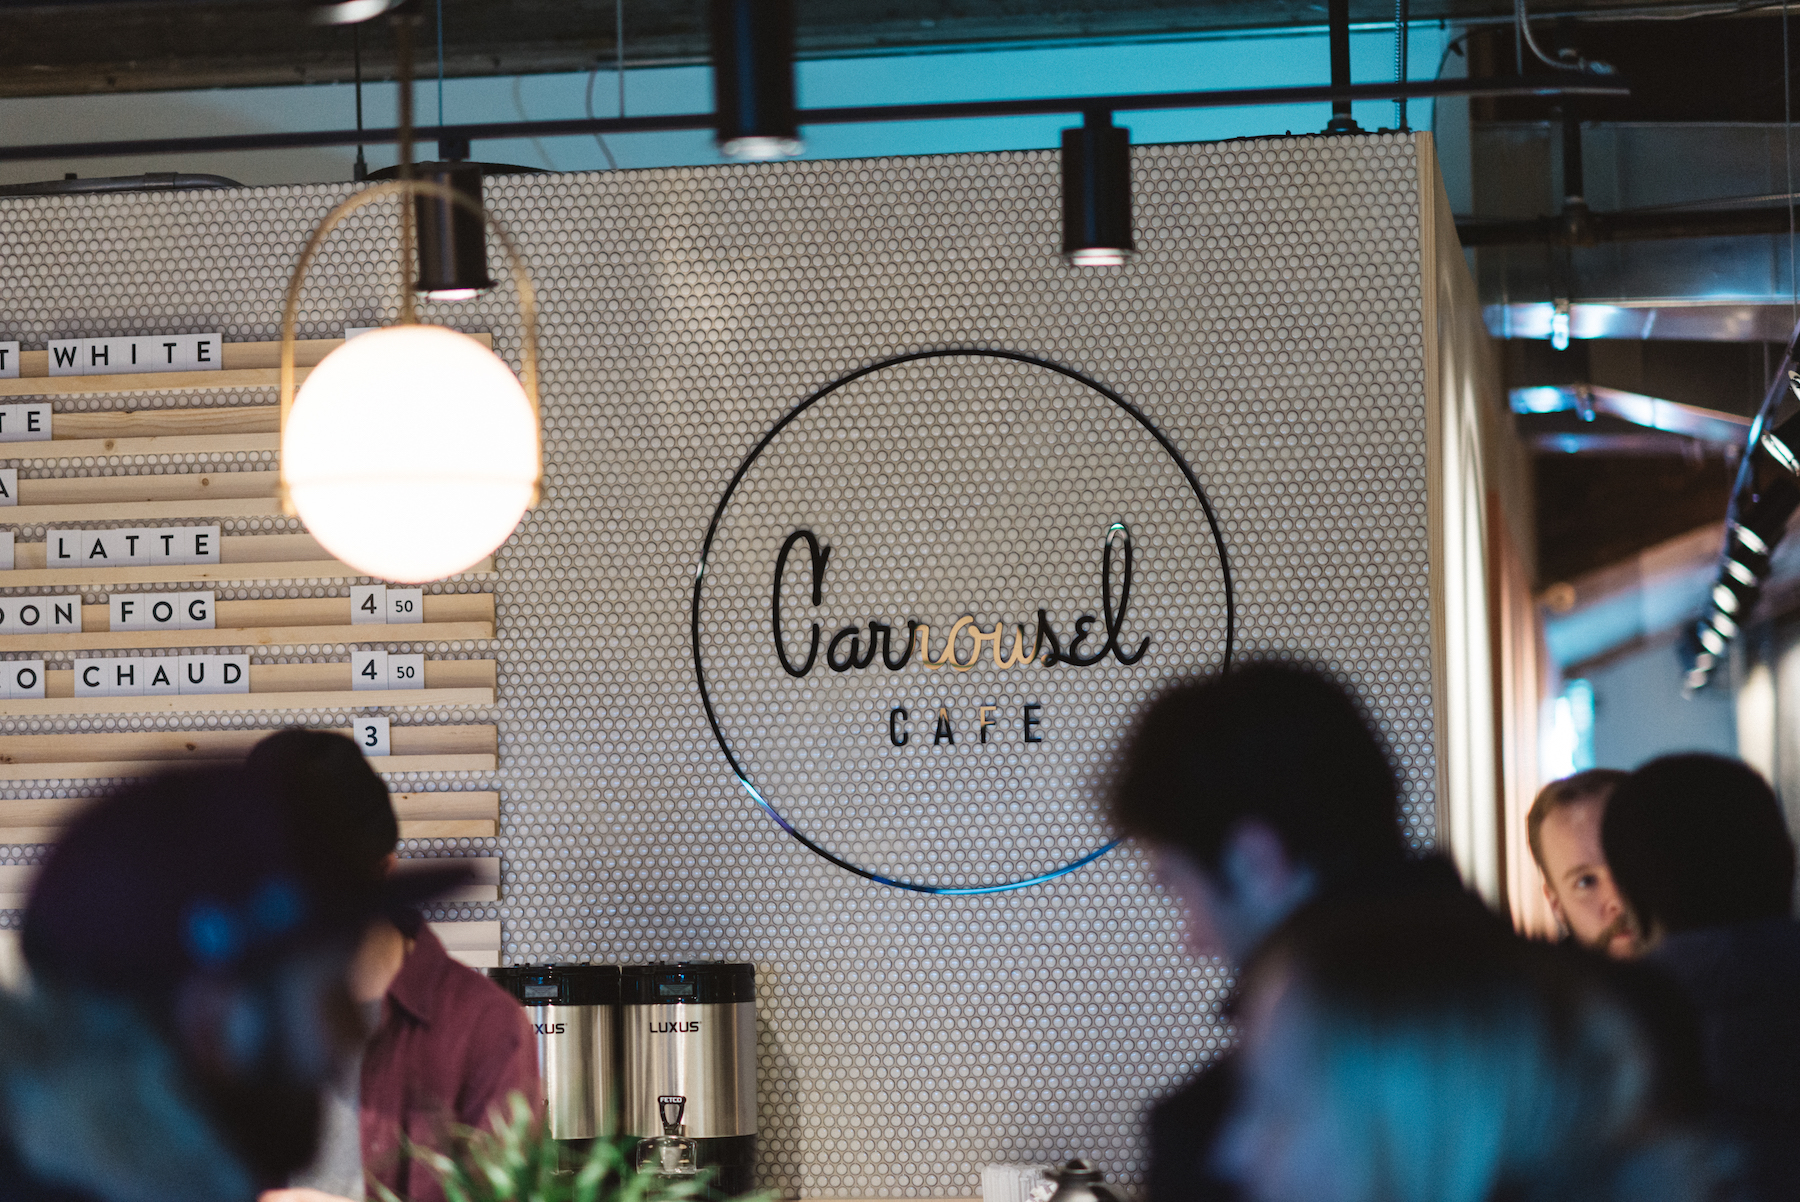 CARROUSEL CAFÉ COMMERCE.jpg